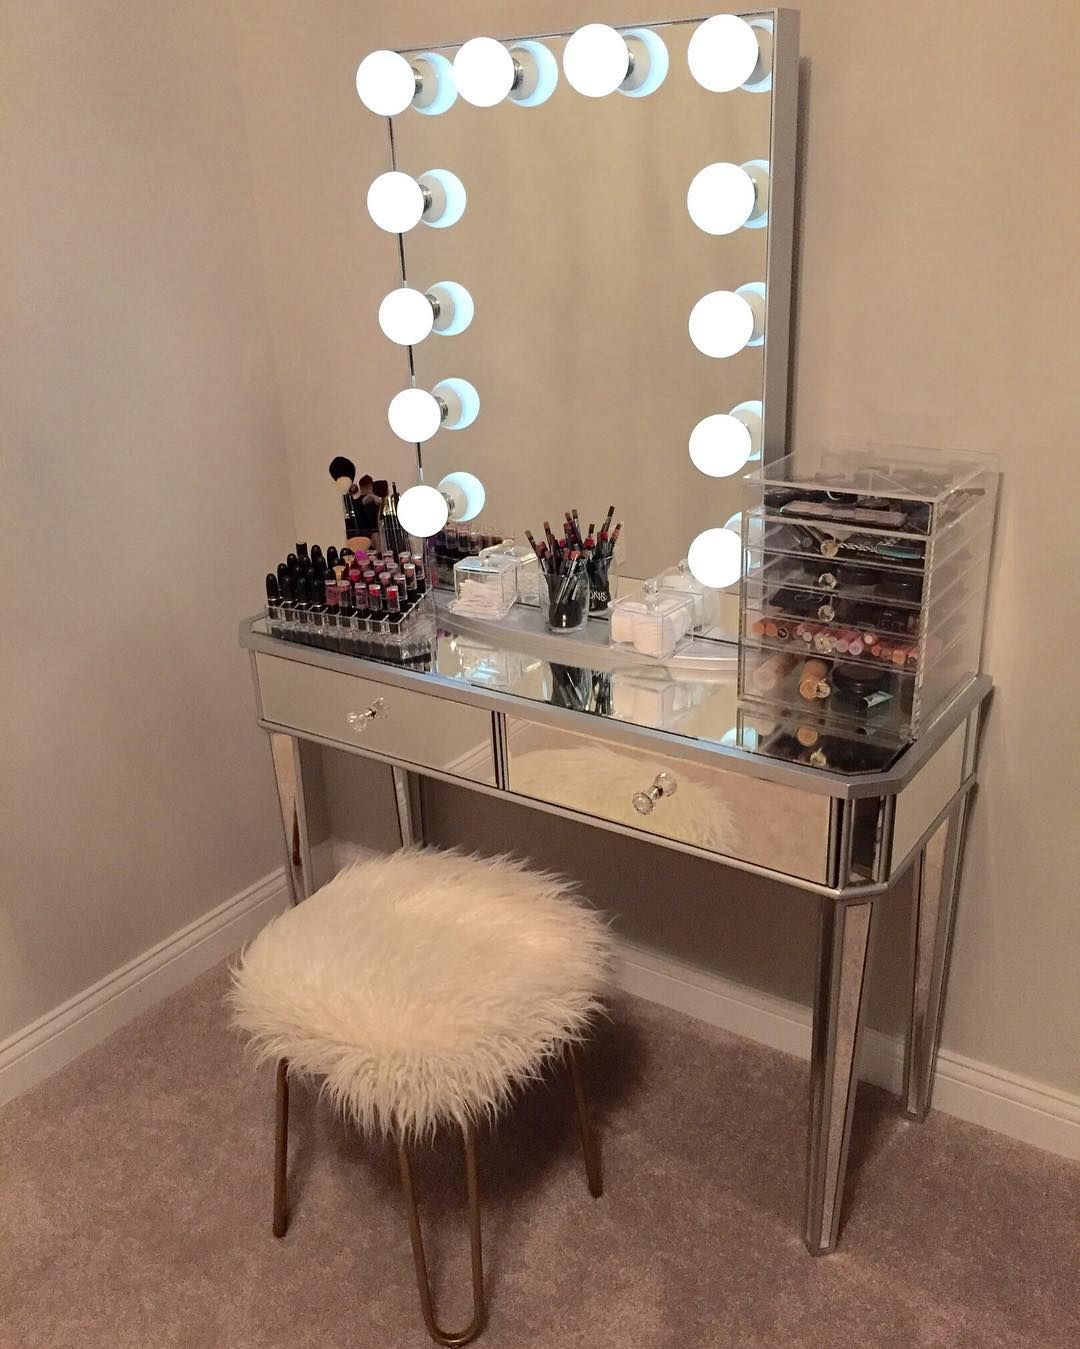 Pinterest Gaaabbriellaa Diy Vanity Mirror Beauty Room Vanity Makeup Beauty Room